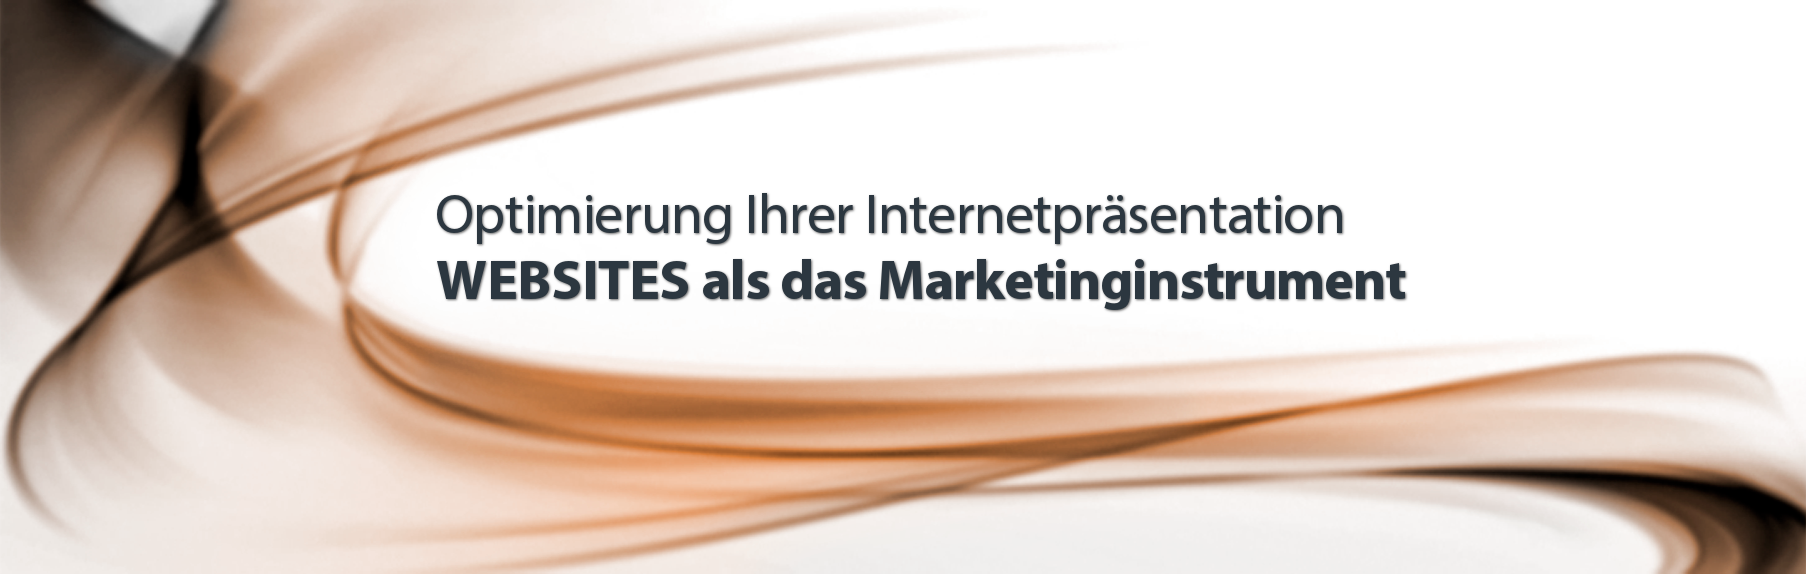 Optimierung Ihrer Internetpräsentation. Websites als das Marketinginstrument.